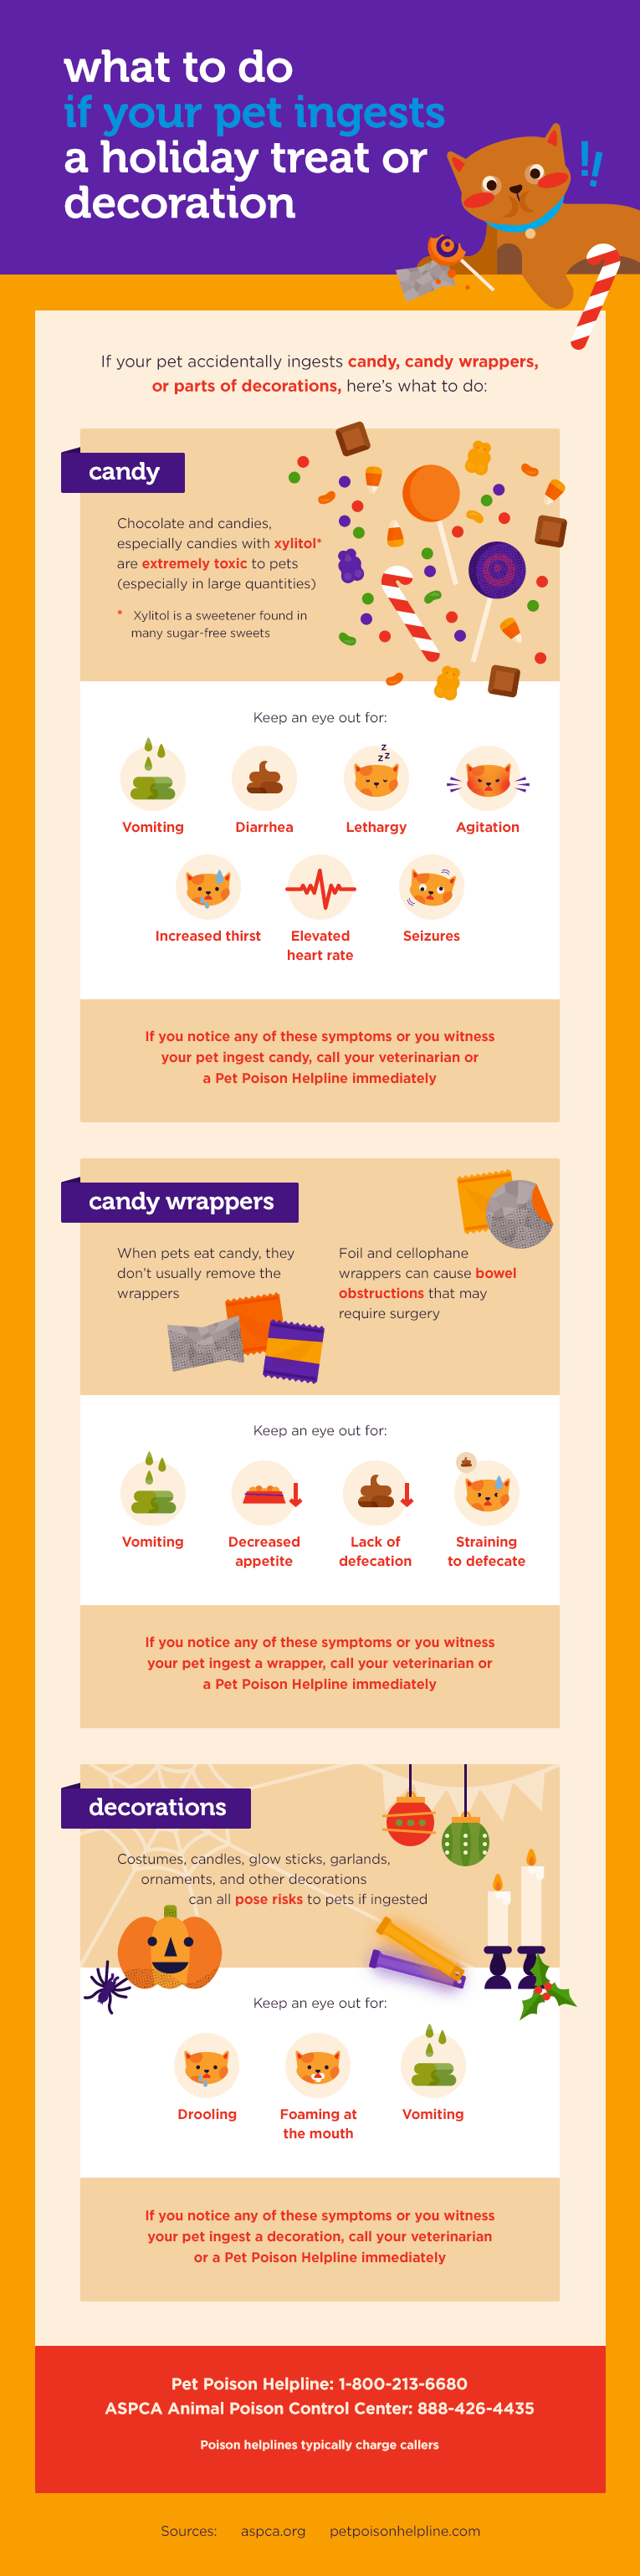 Halloween Pet Safety Tips And Costume Advice